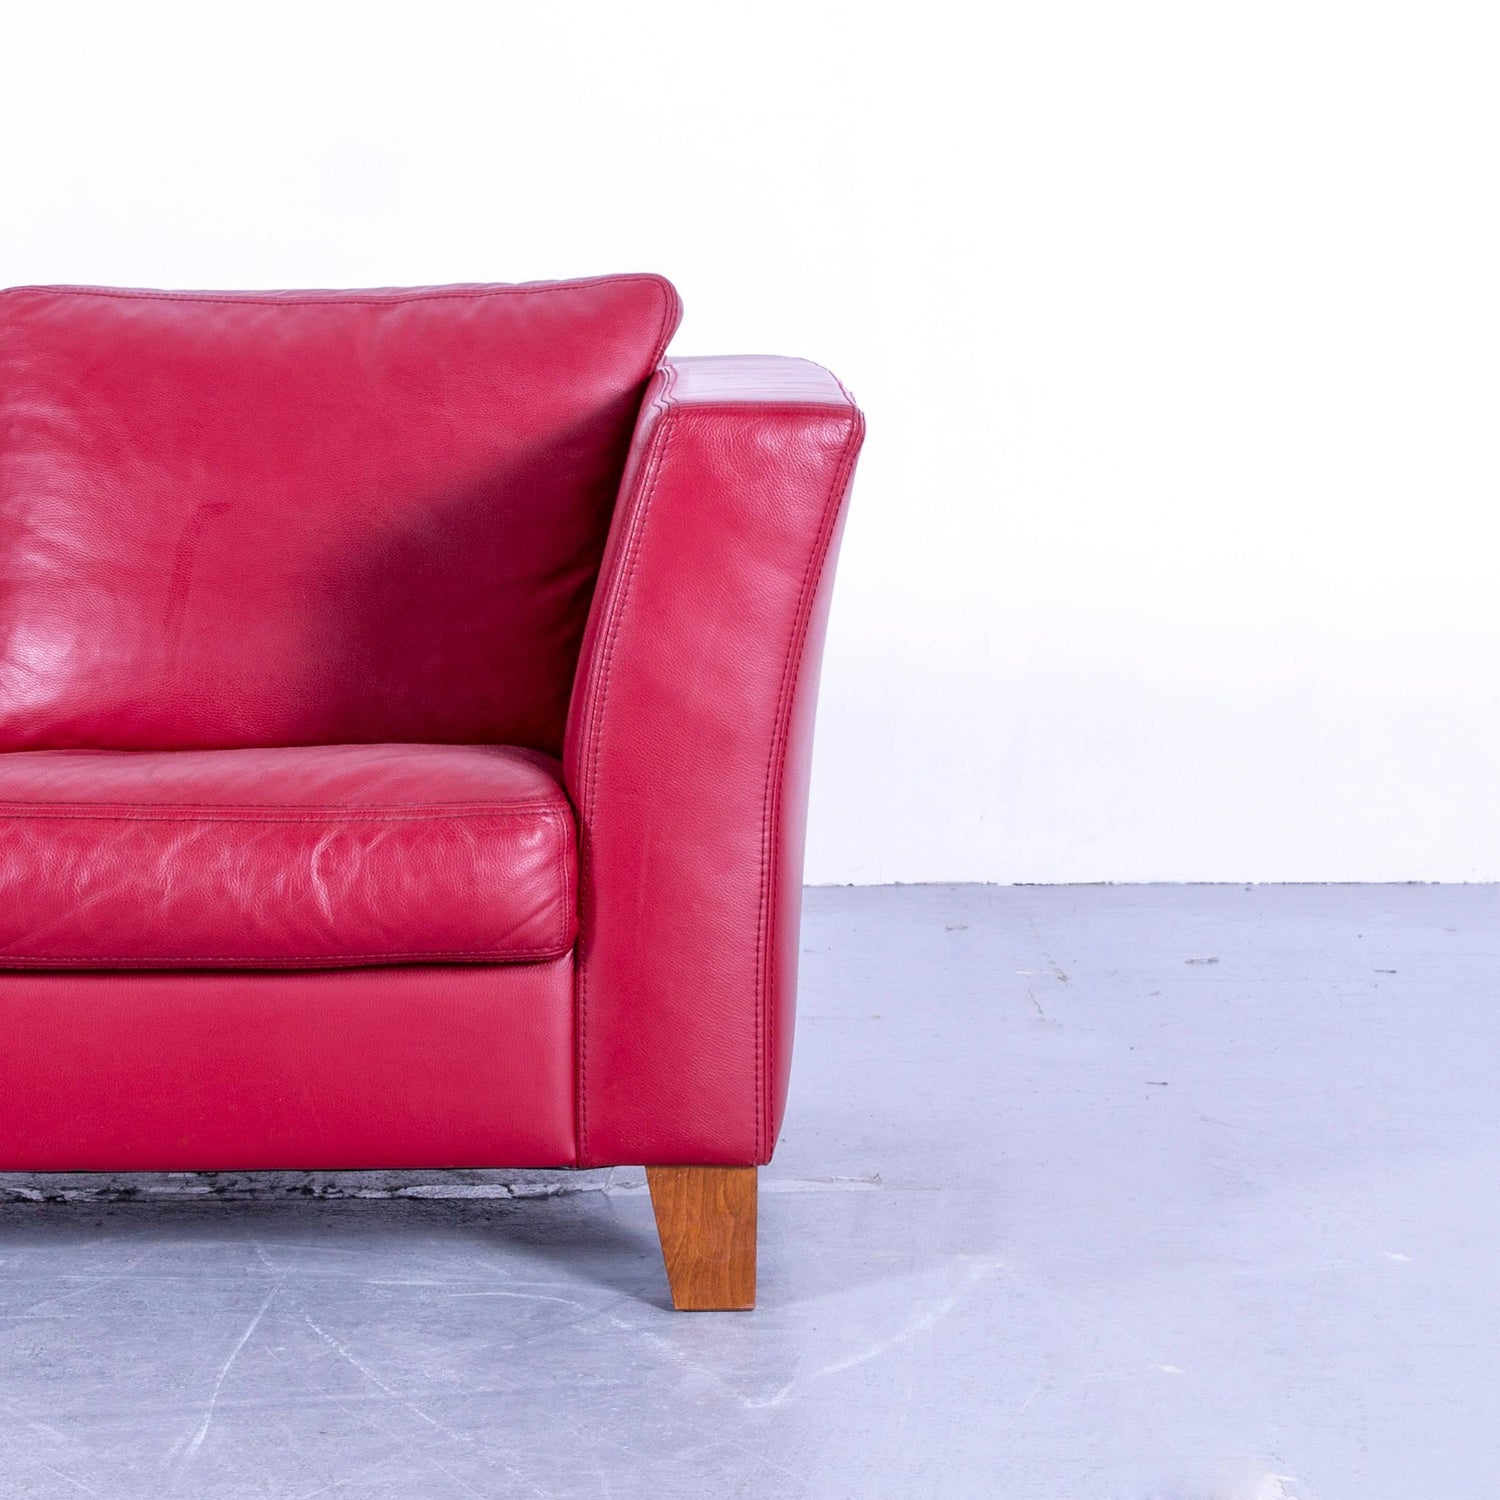 Machalke Designer Leather Sofa Red Two Seat Couch at 1stdibs